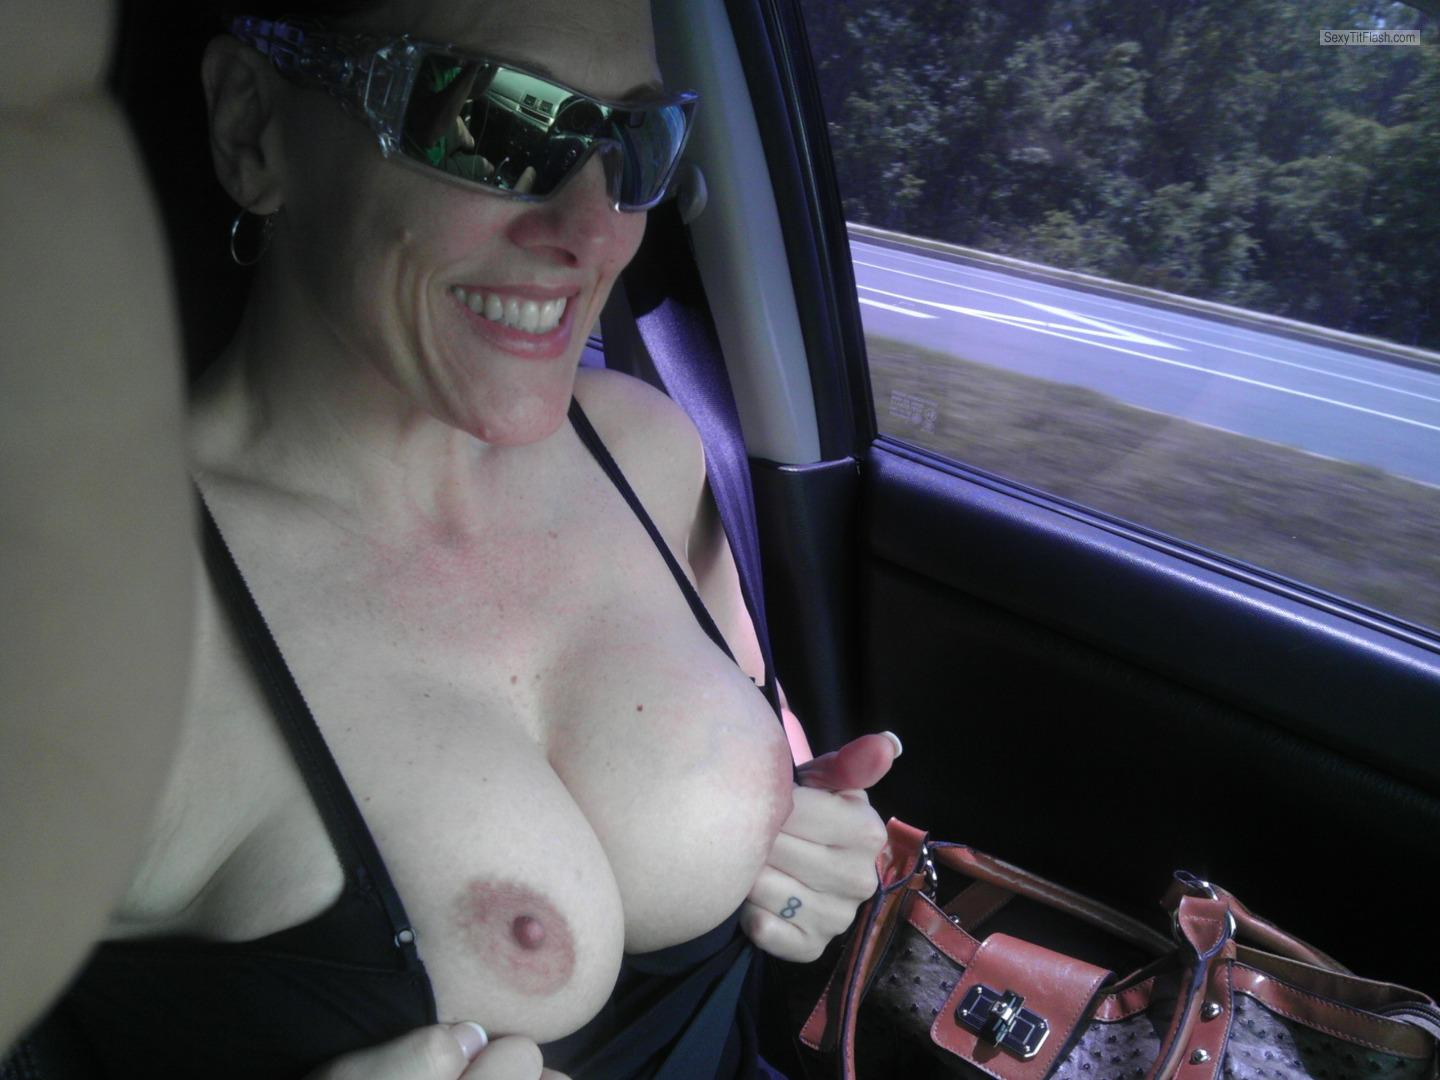 Tit Flash: My Big Tits - Topless Maneboobs from United States